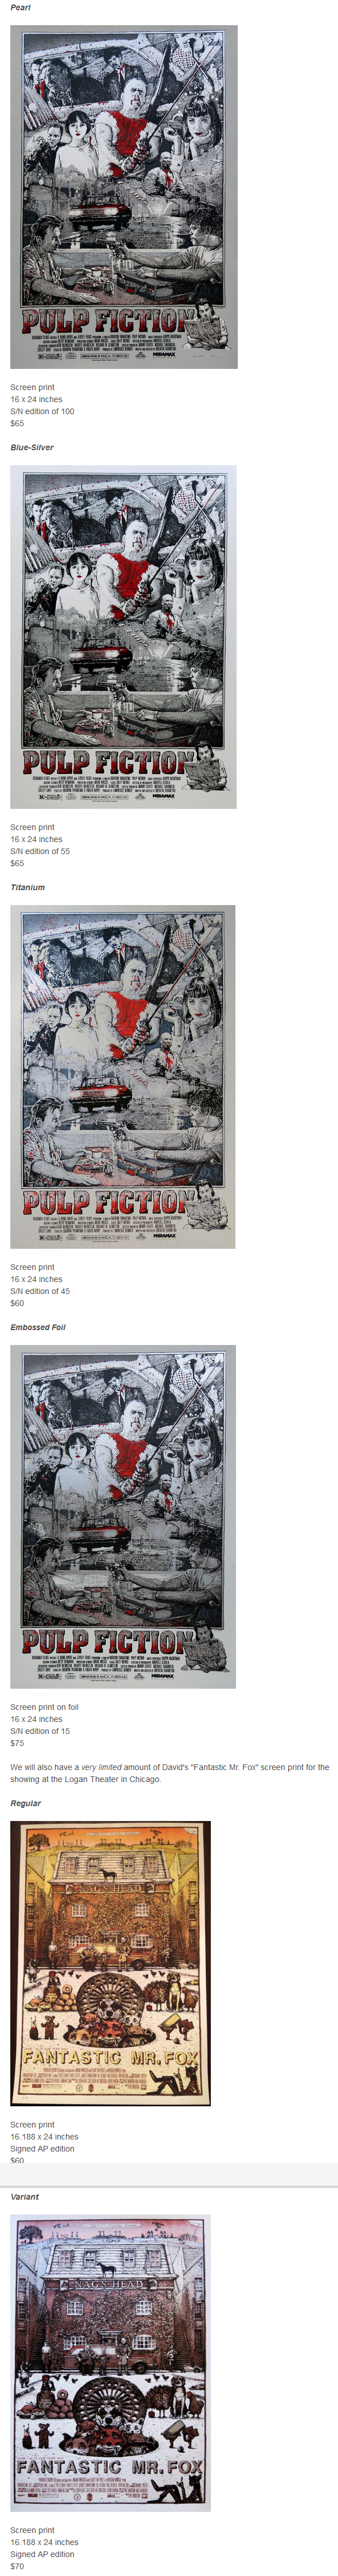 David_Welker_s_Pulp_Fiction_and_Fantastic_Mr._Fox_Screening_Posters_-_2015-01-06_01.44.51